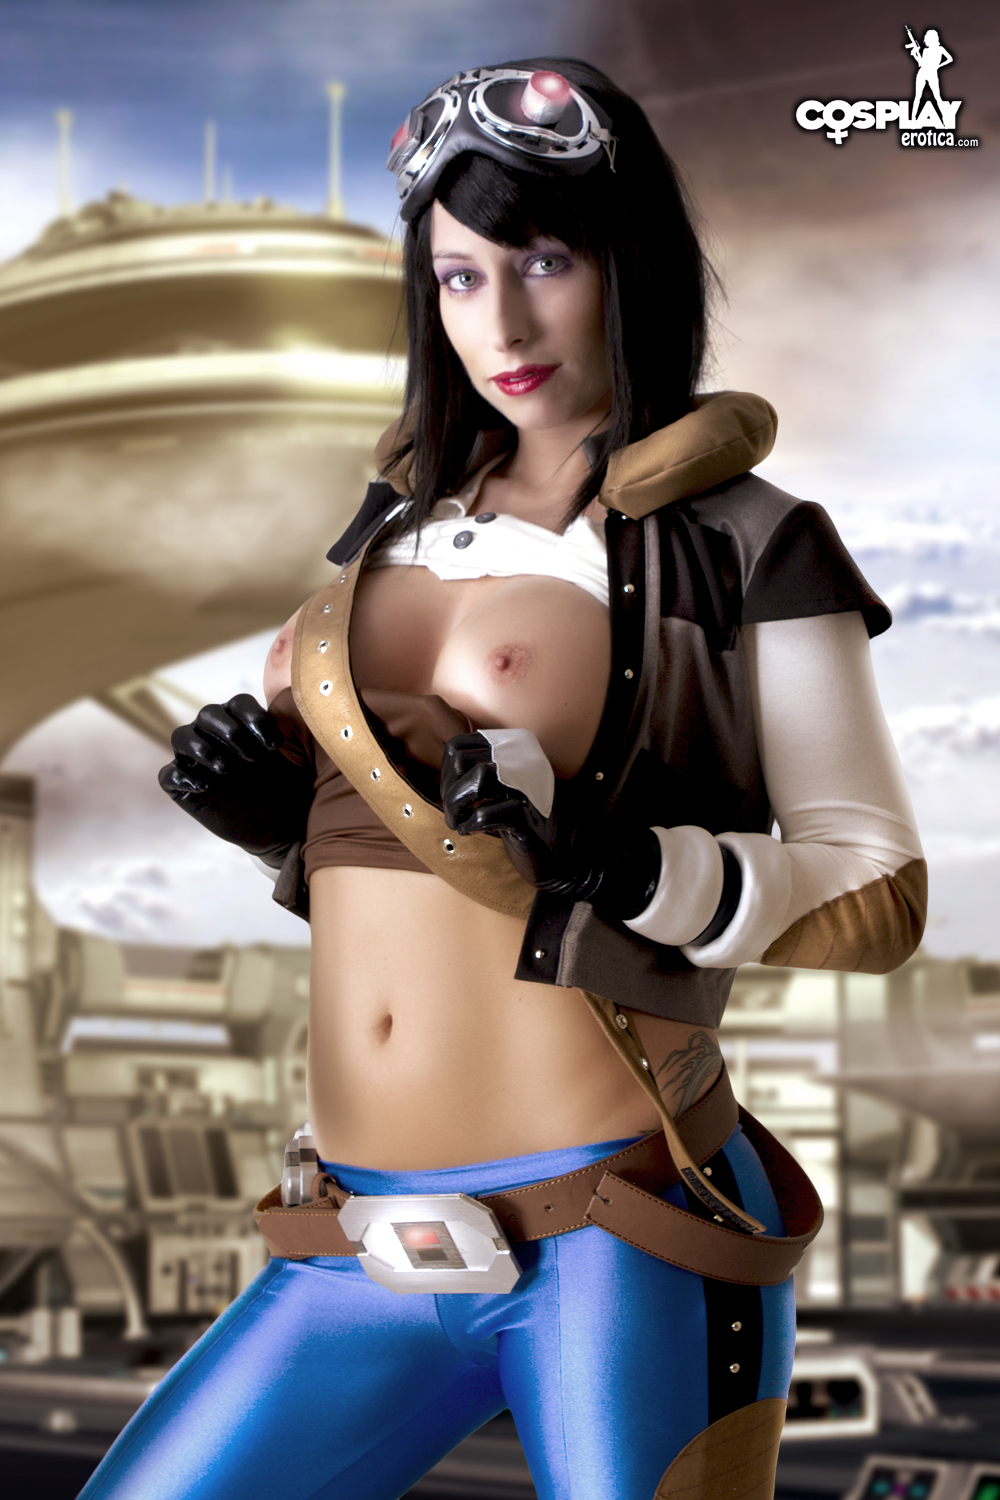 Cosplay naked star wars sexy galleries